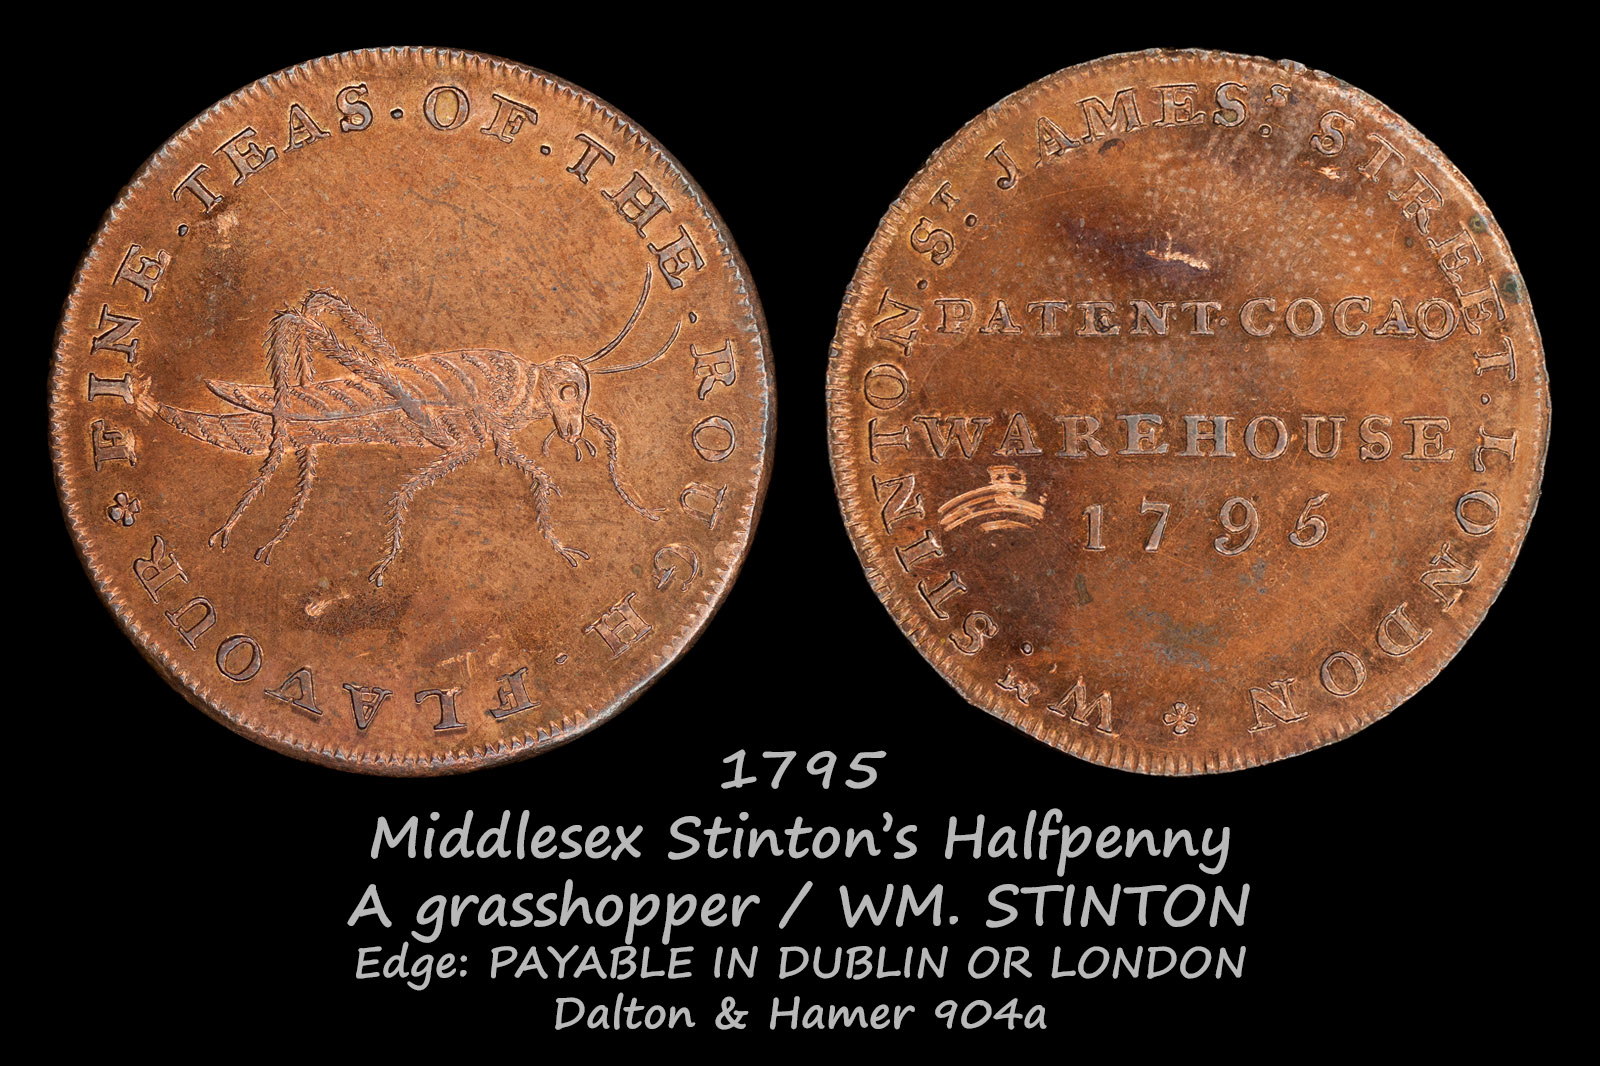 Middlesex Stinton's Halfpenny D&H904a